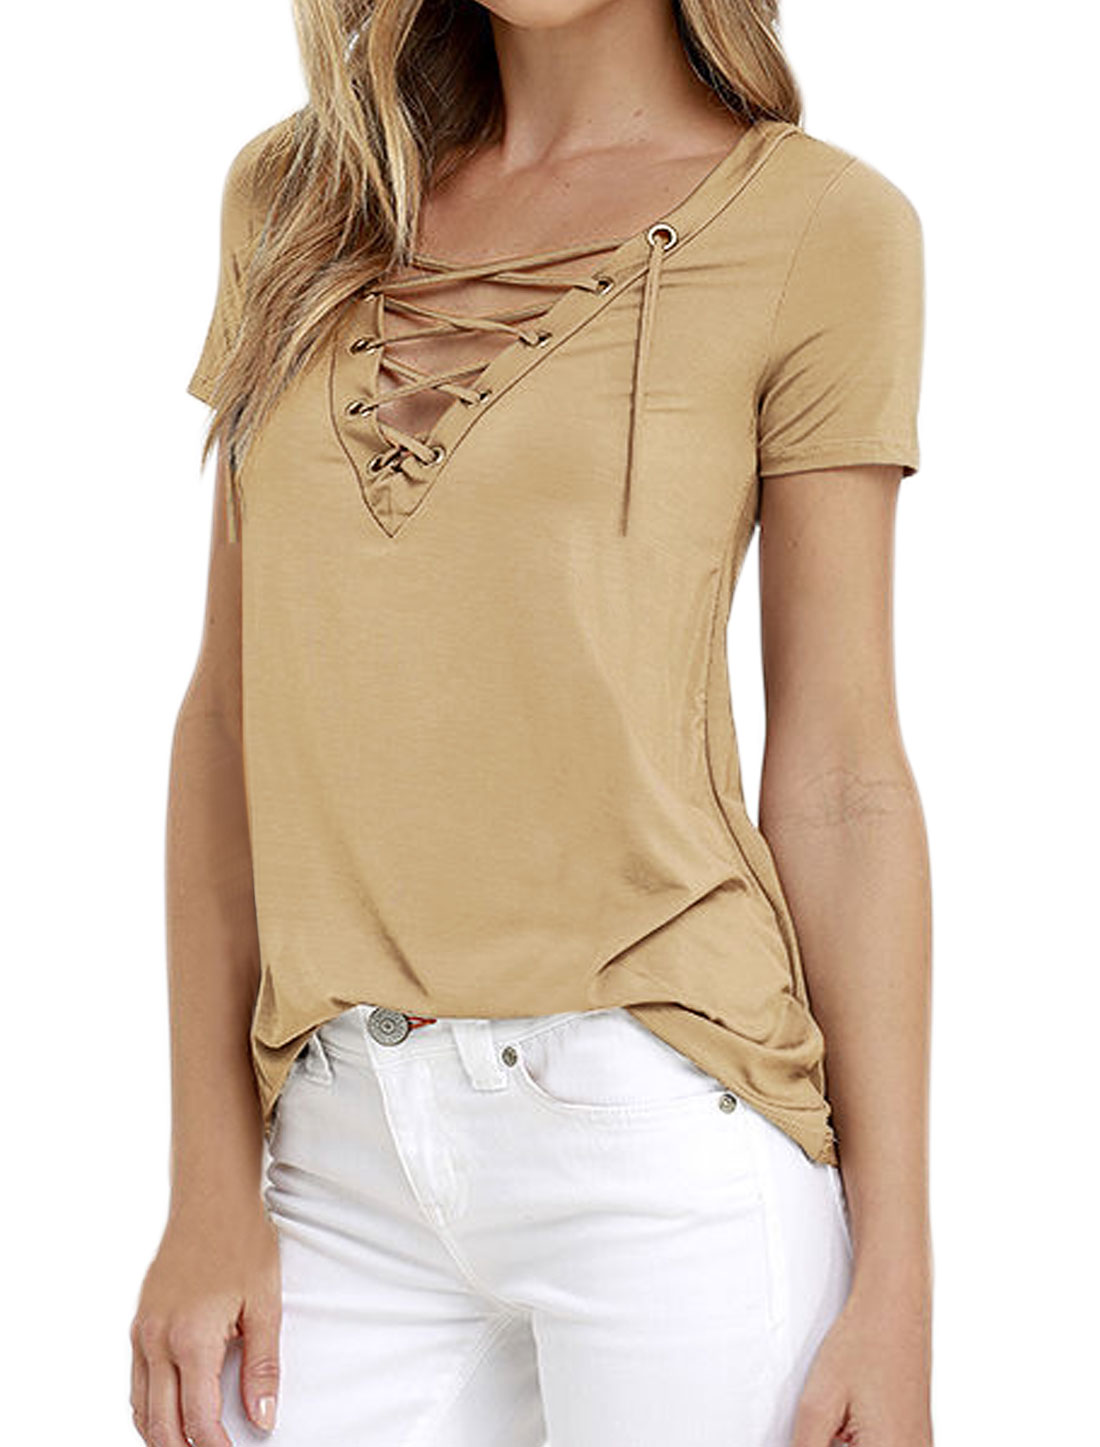 Women Eyelet Design Lace Up Front V Neck Stretchy Tee Shirt Beige M